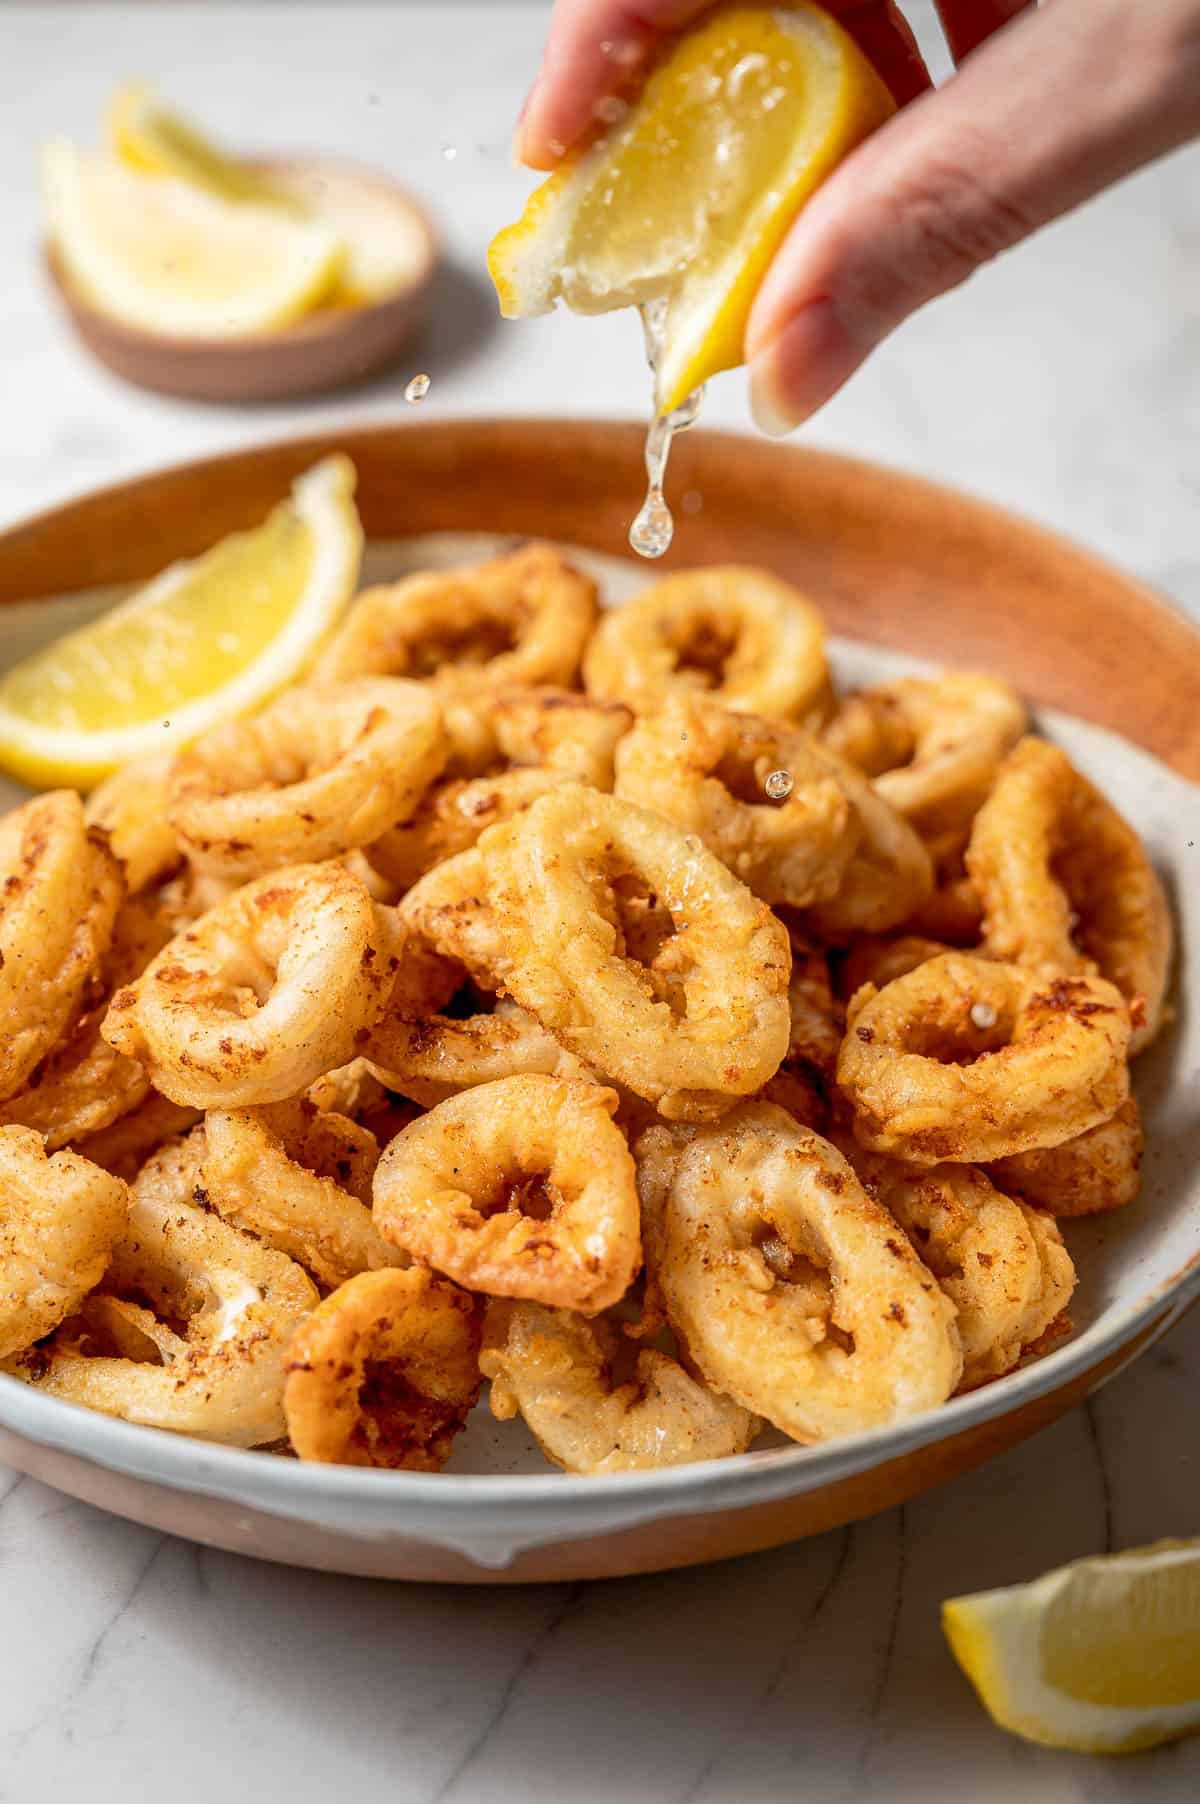 A large bowl of fried calamari with a hand squeezing lemon on top.